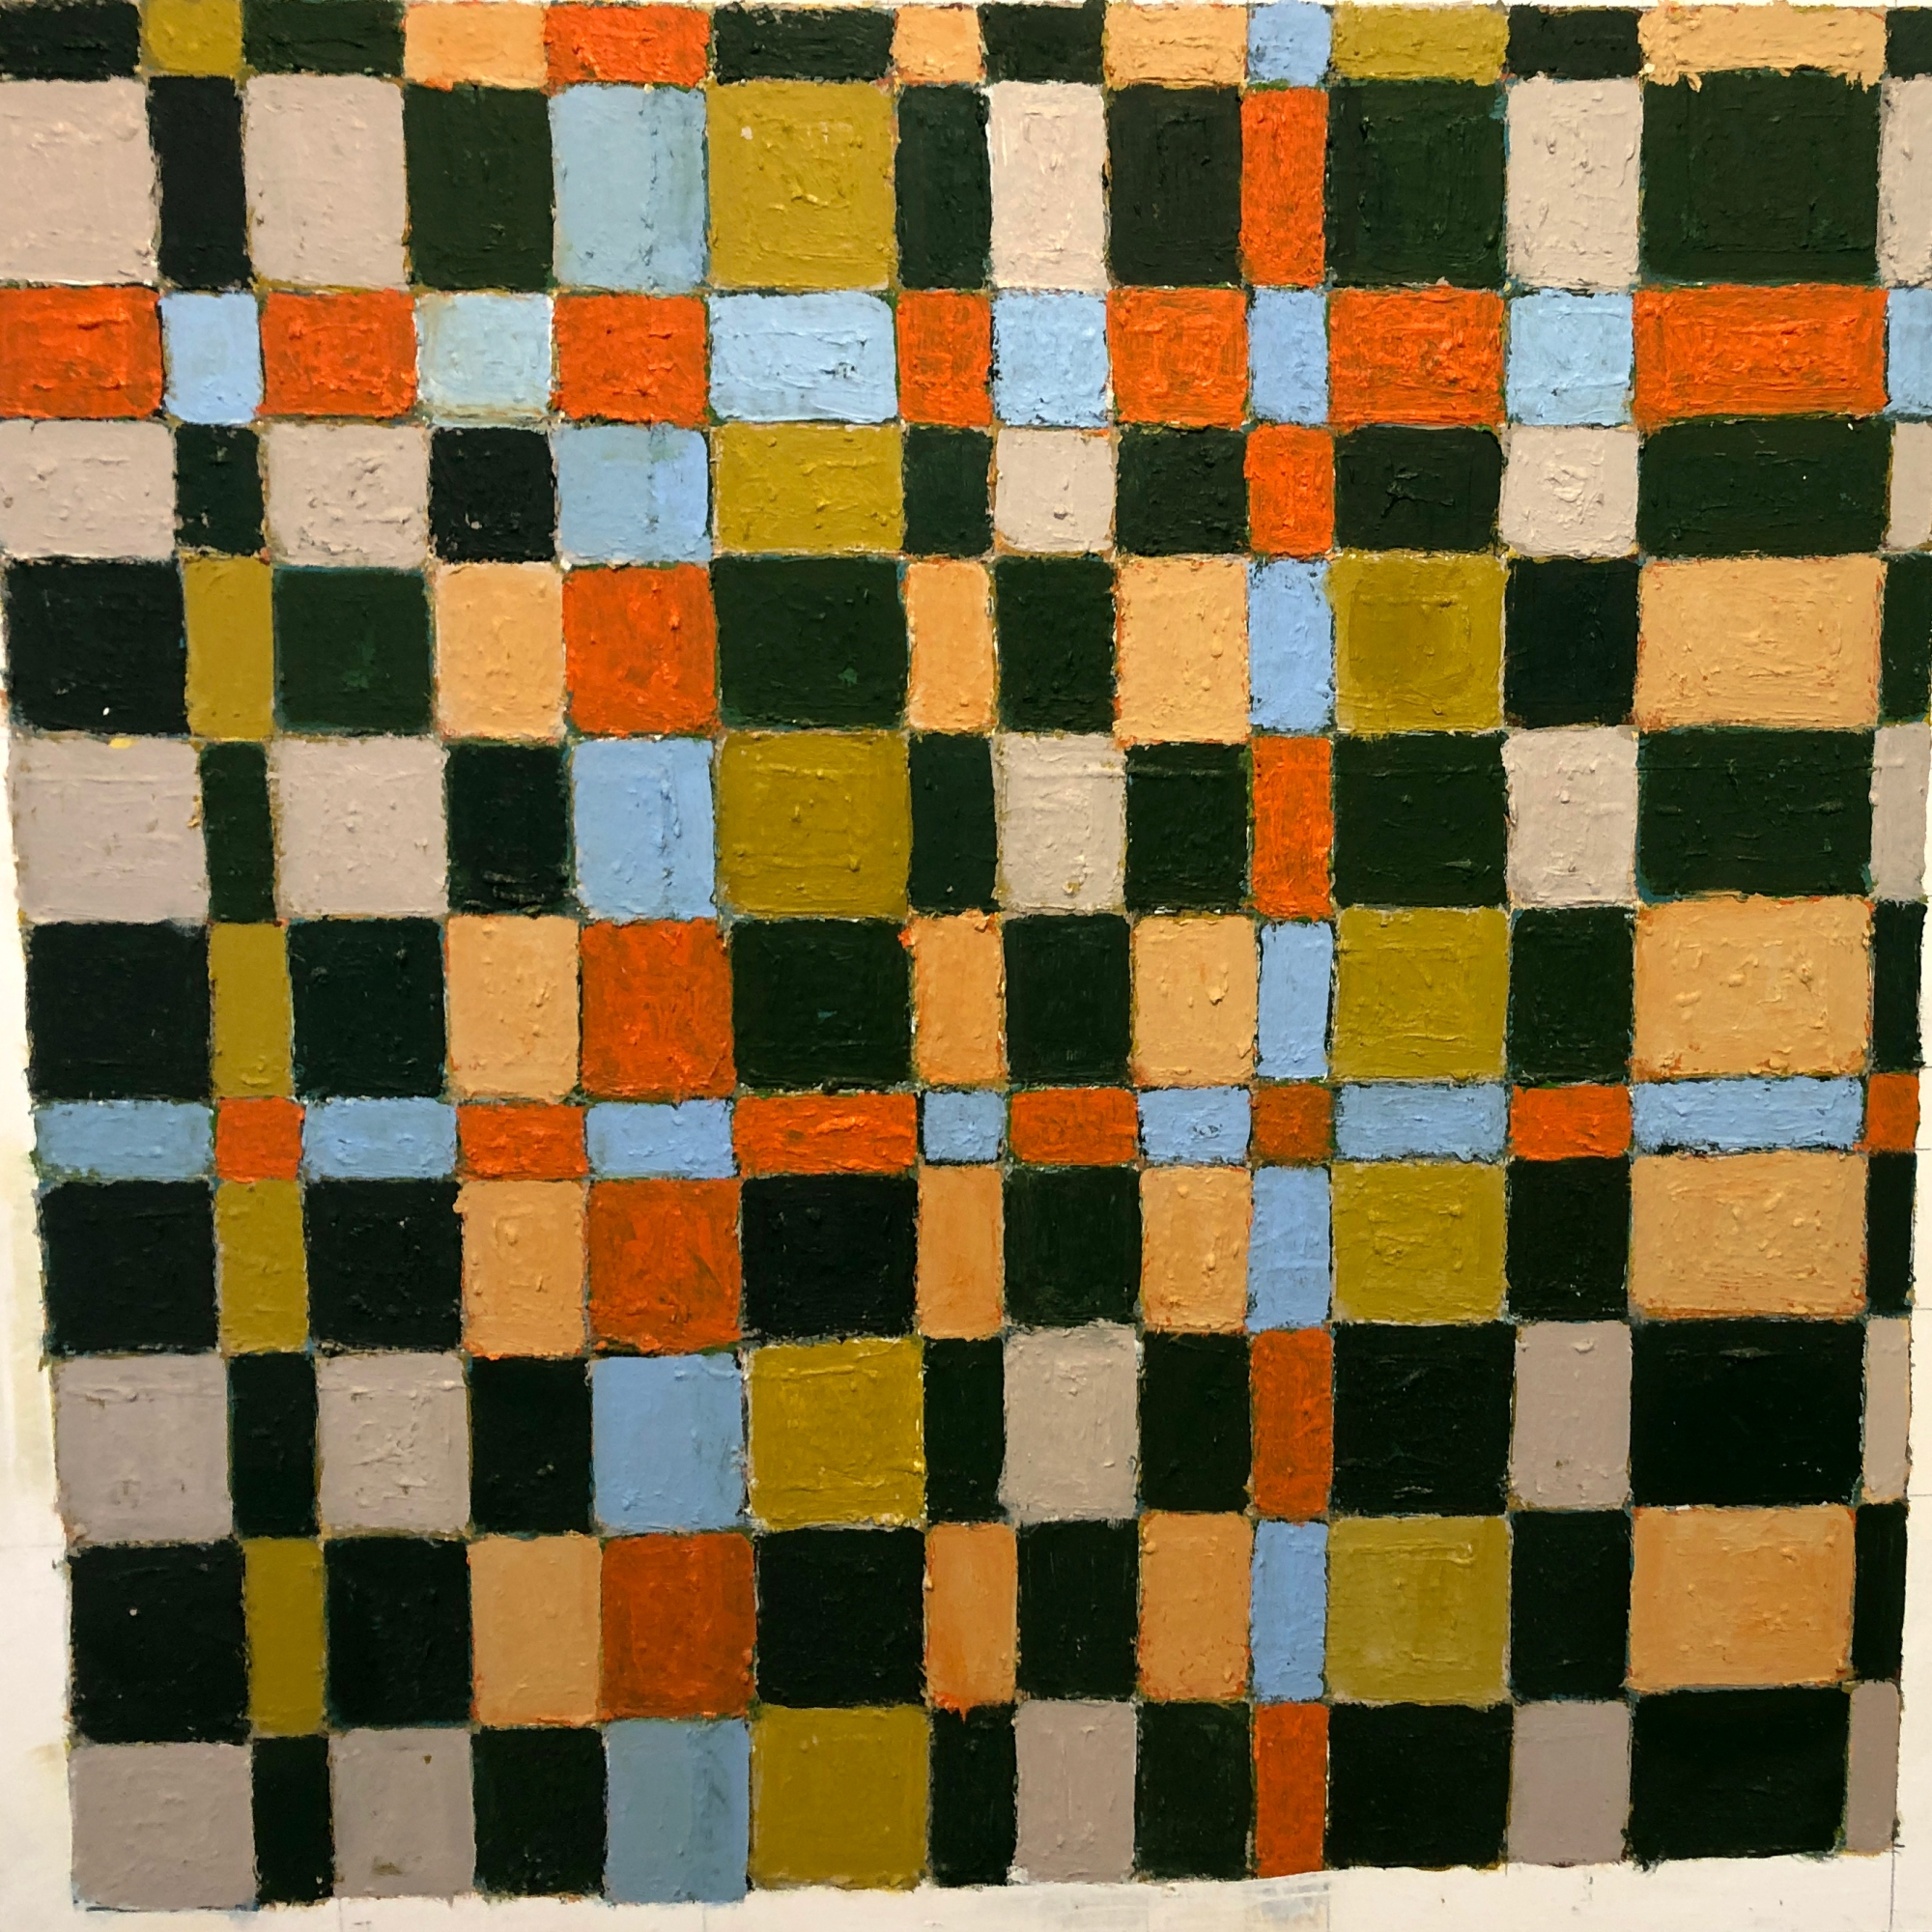 Quilt Series painting by Tim Beavis